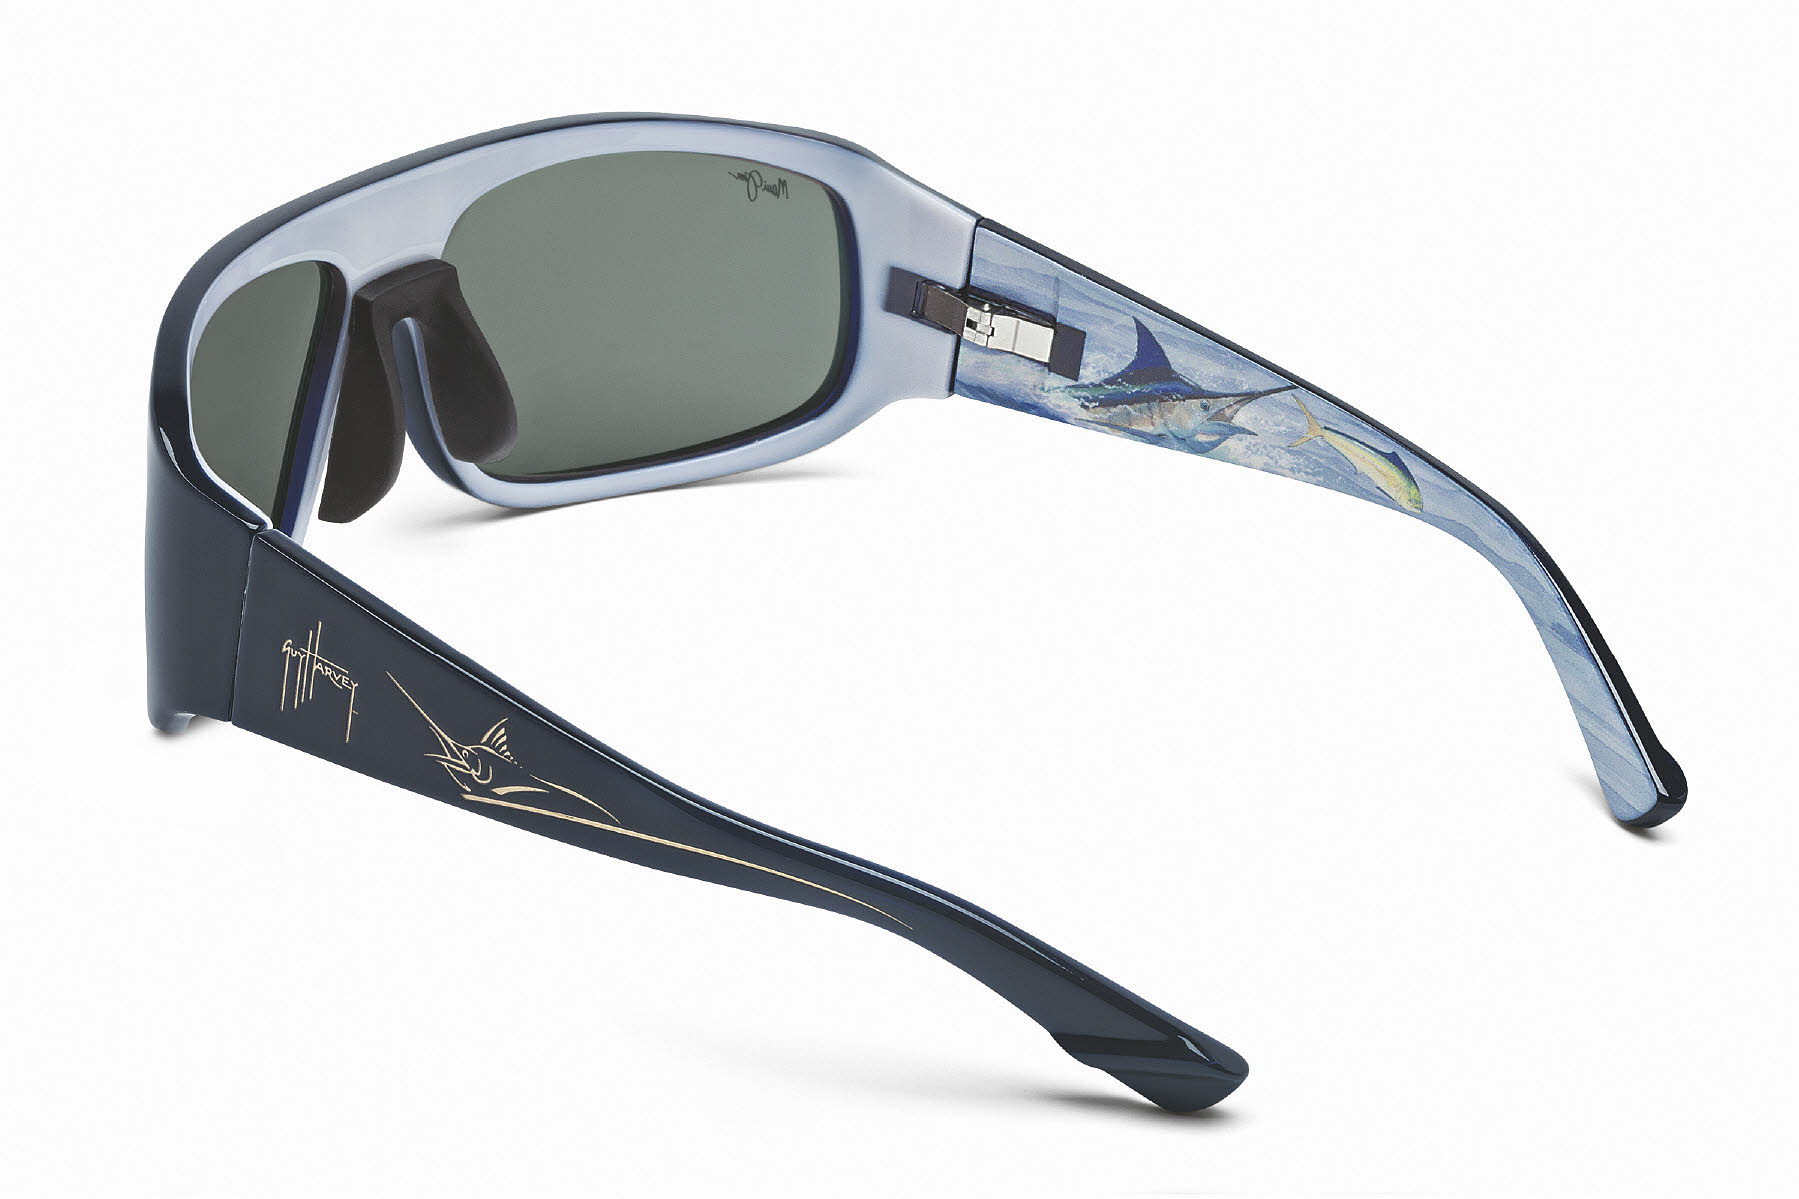 Maui Jim Launches New Guy Harvey Sunglasses Collection on New World Center Miami Beach